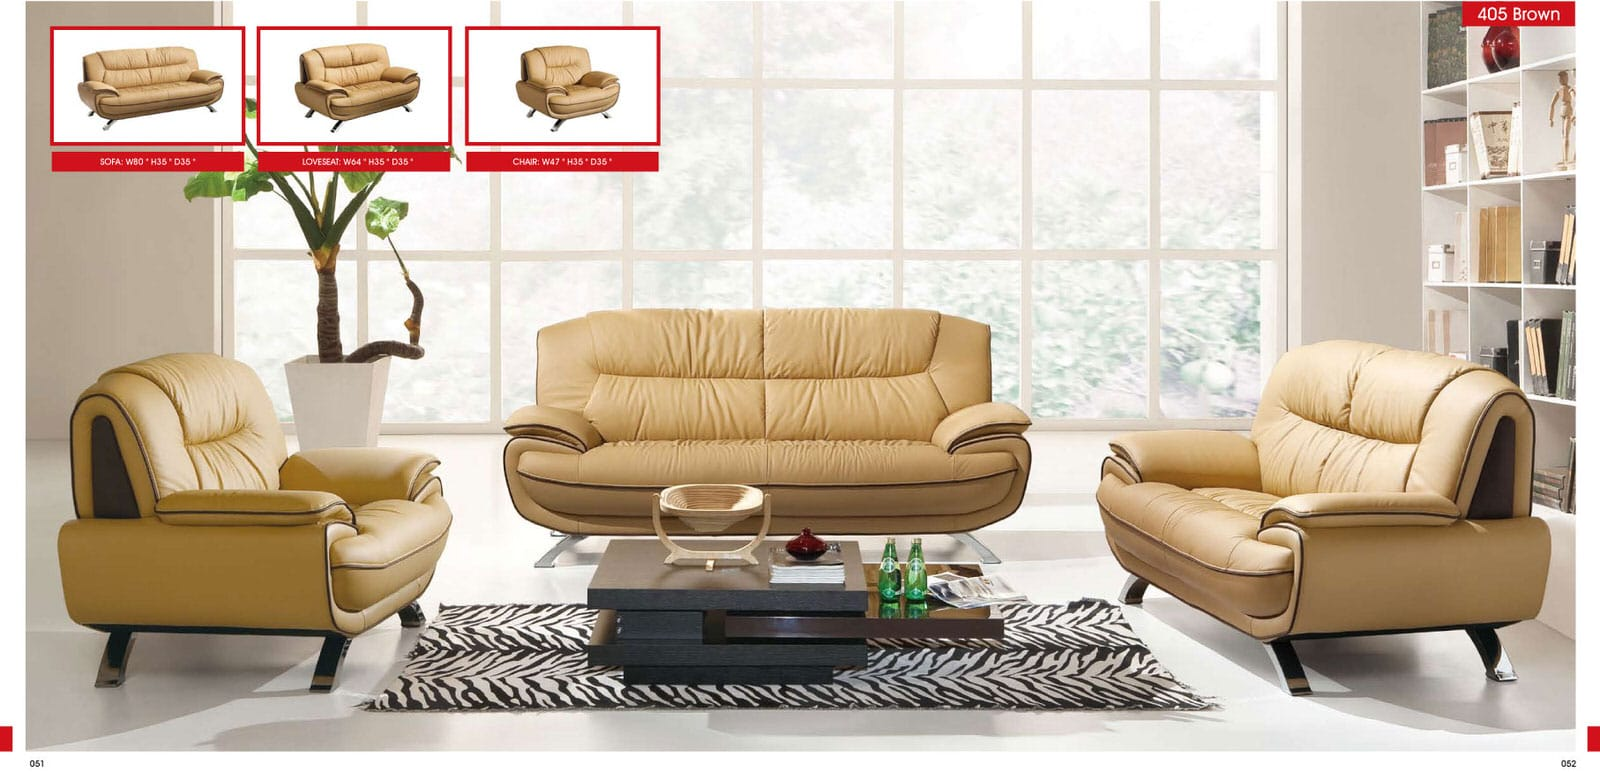 405 Brown Leather Sofa Set By Esf